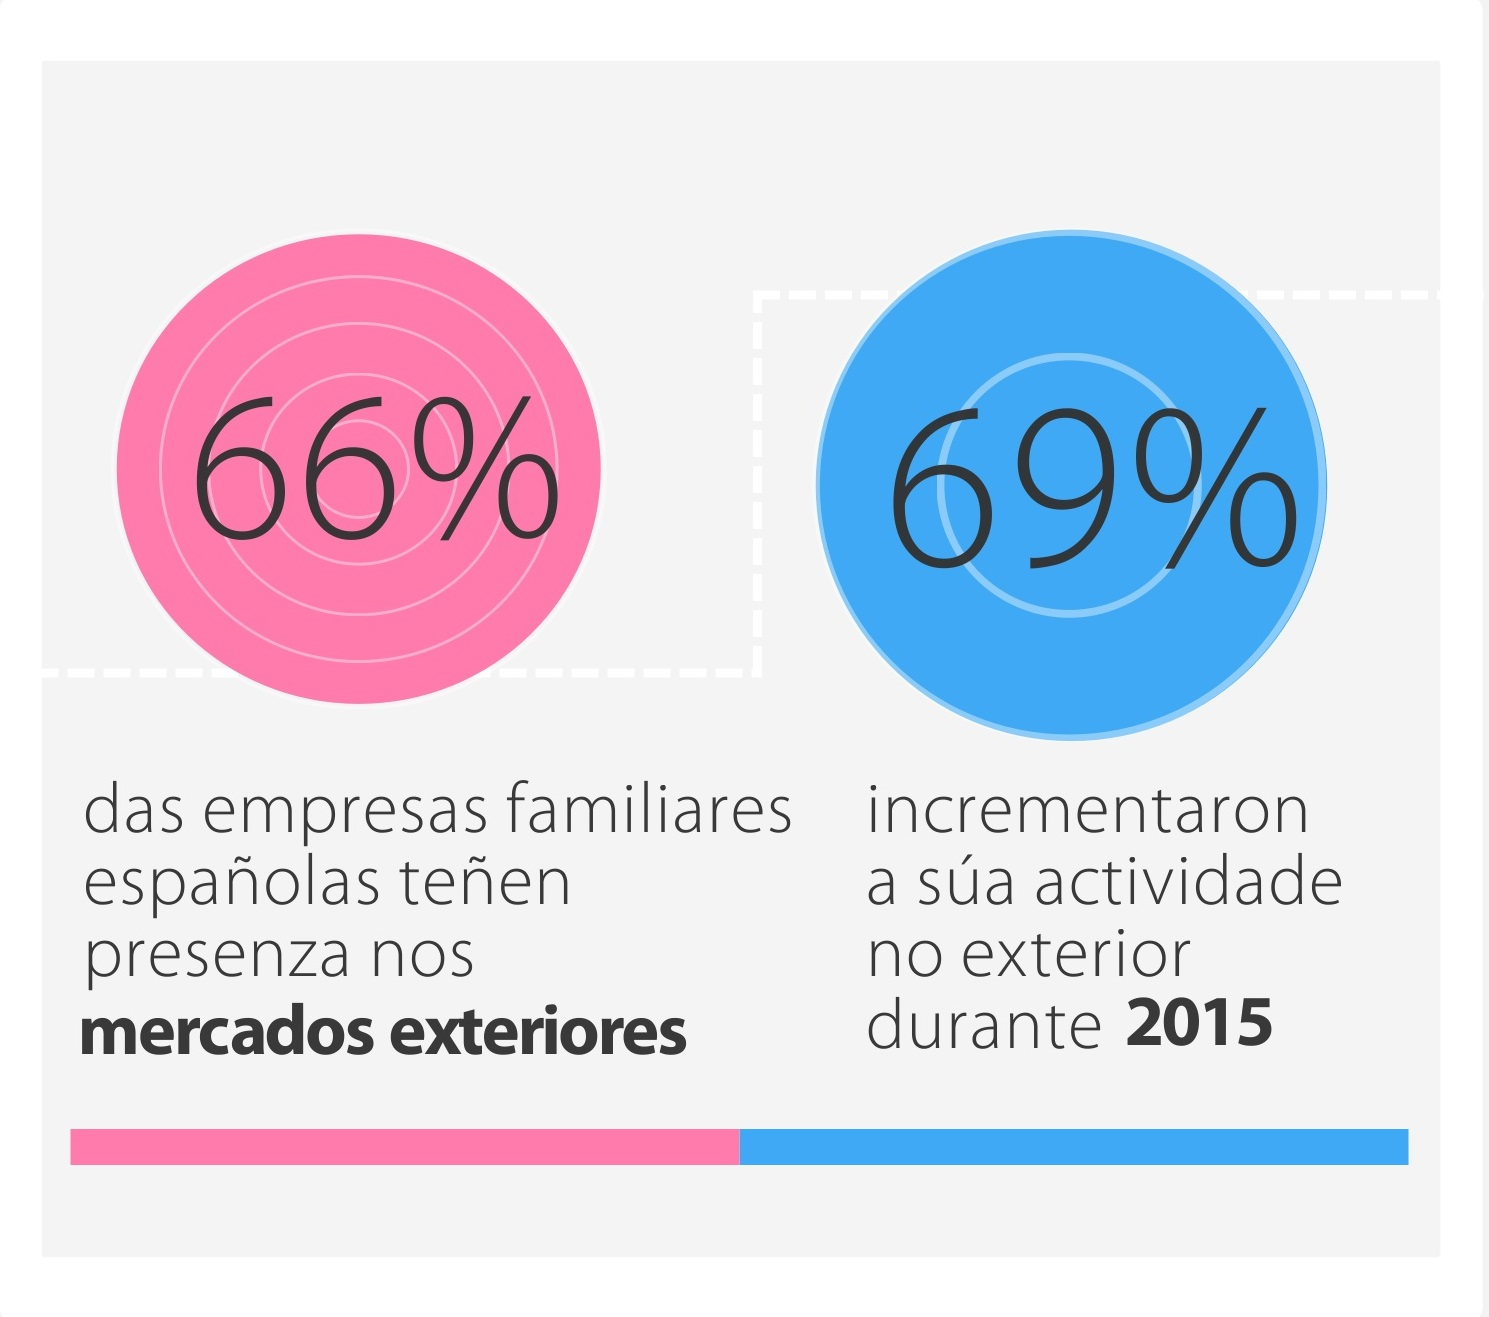 Datos do IV barómetro de empresa familiar do Instituto de Empresa Familiar